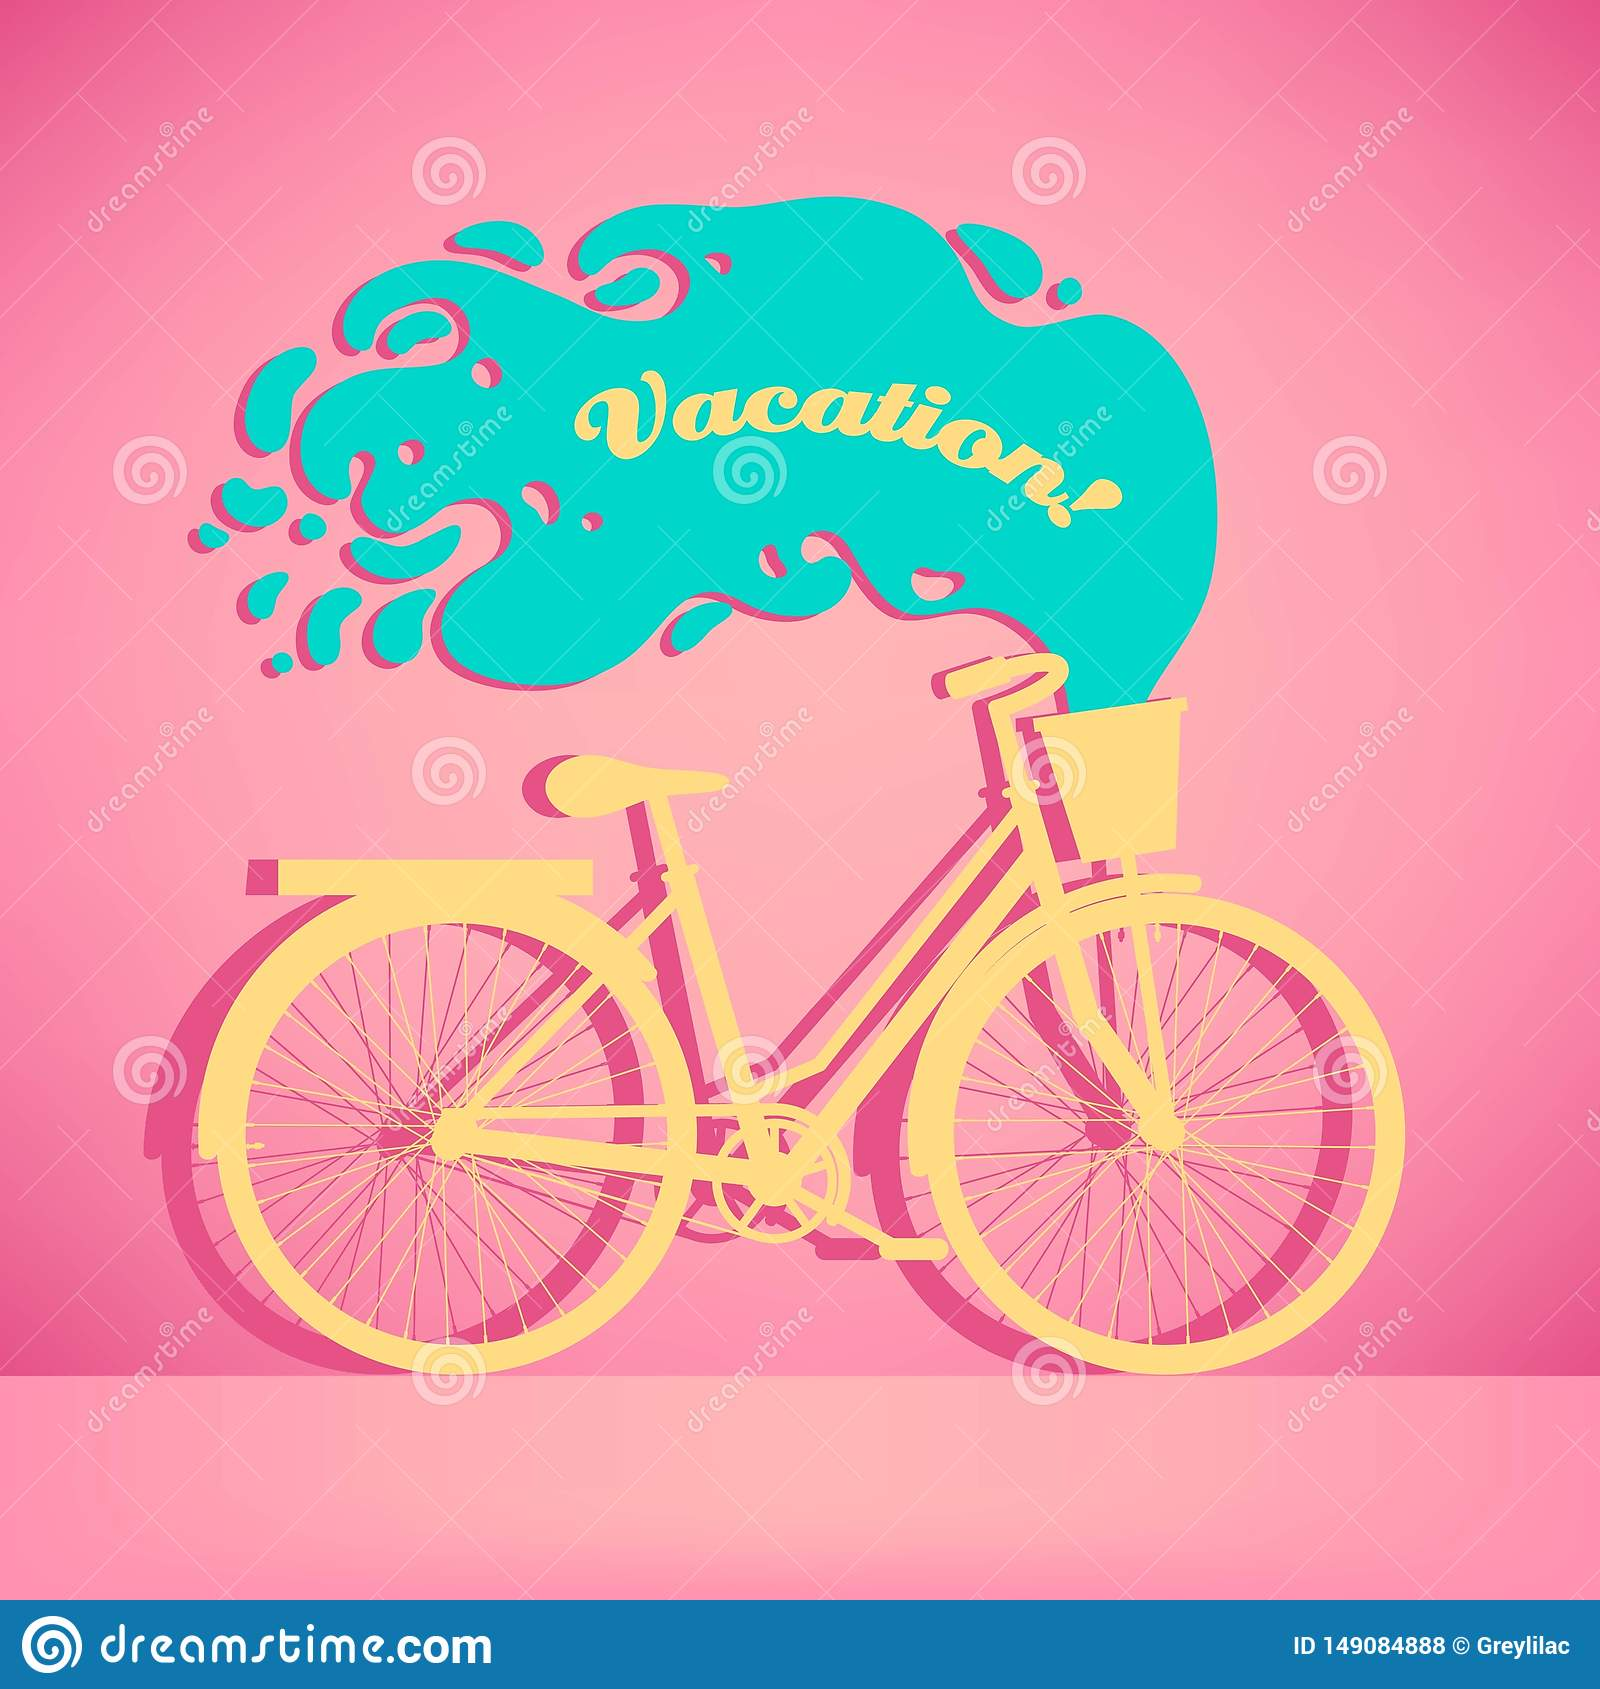 Illustration of colorful retro bicycle with basket